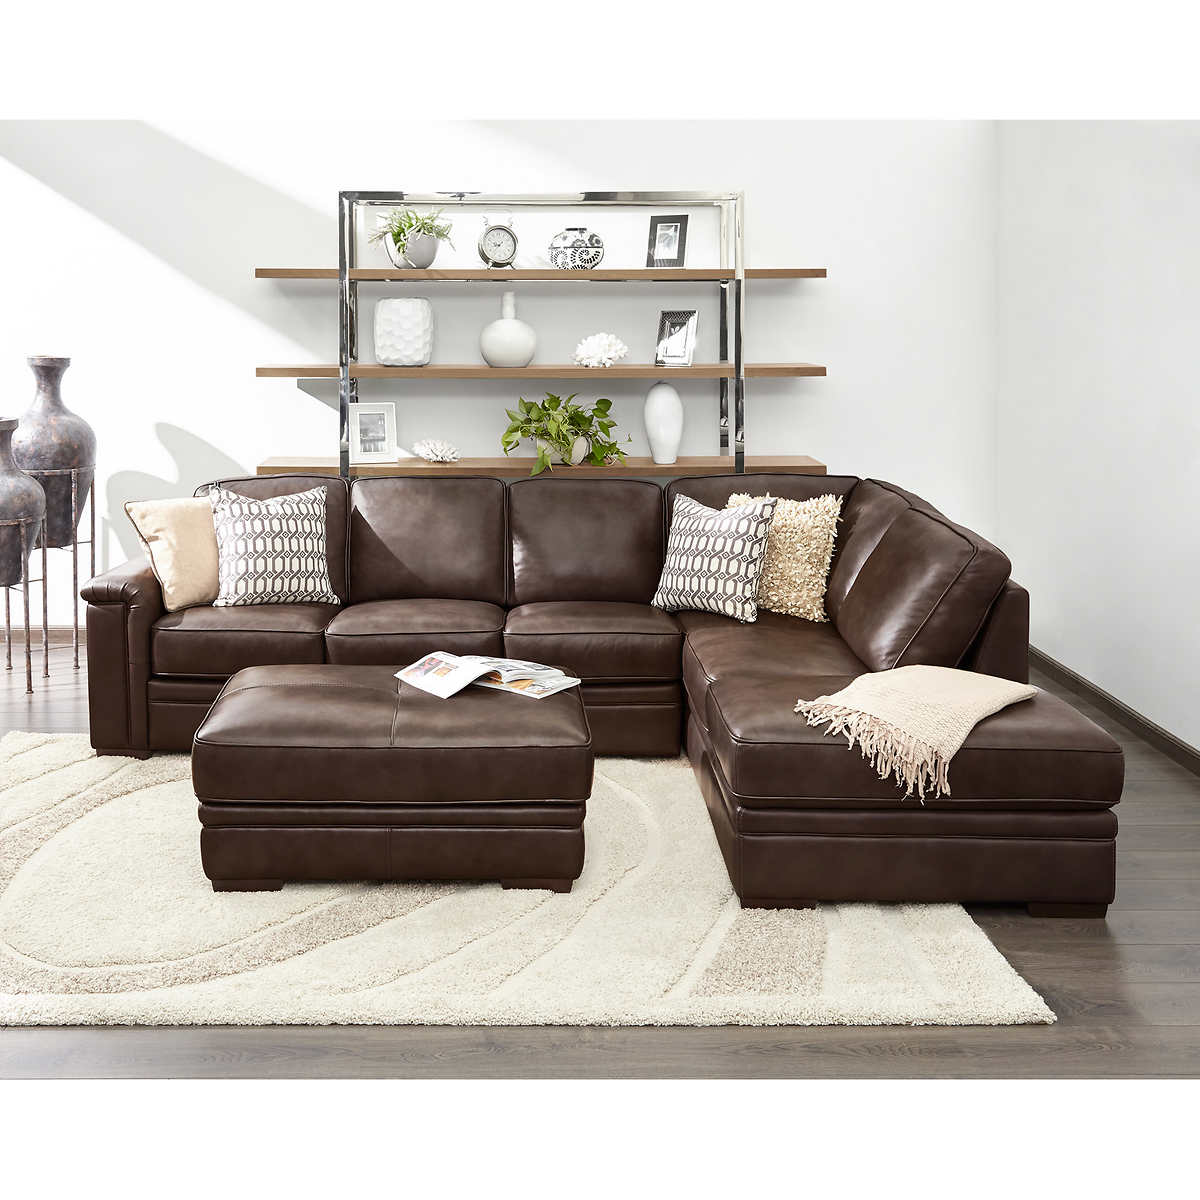 Costco sectional sofa canada refil sofa for Couch vs sofa canada